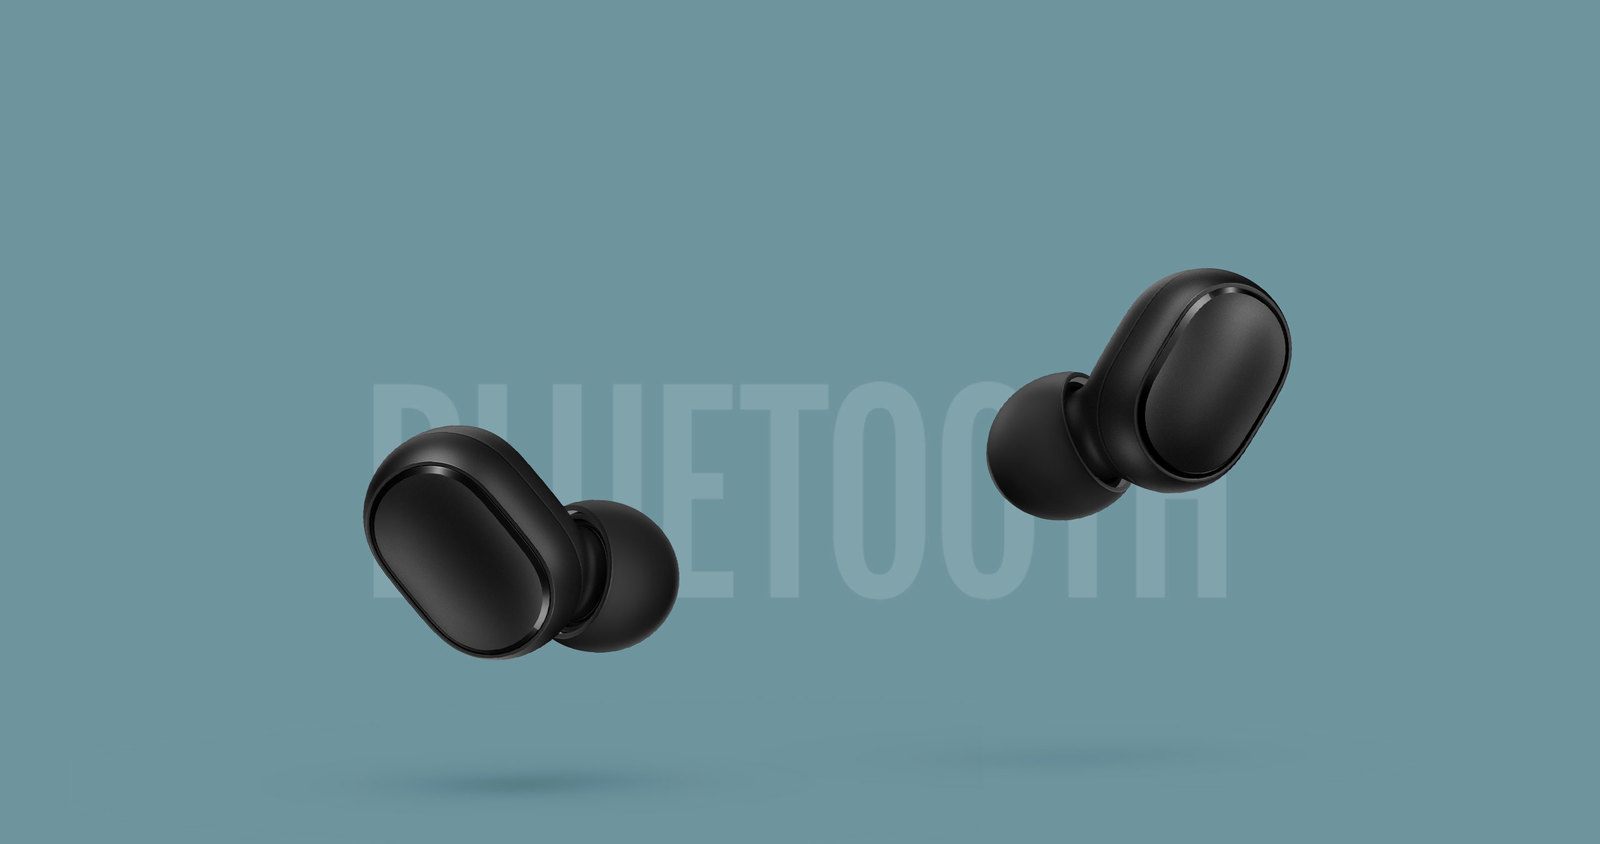 Xiaomi Redmi AirDots Wireless Earphones image 2